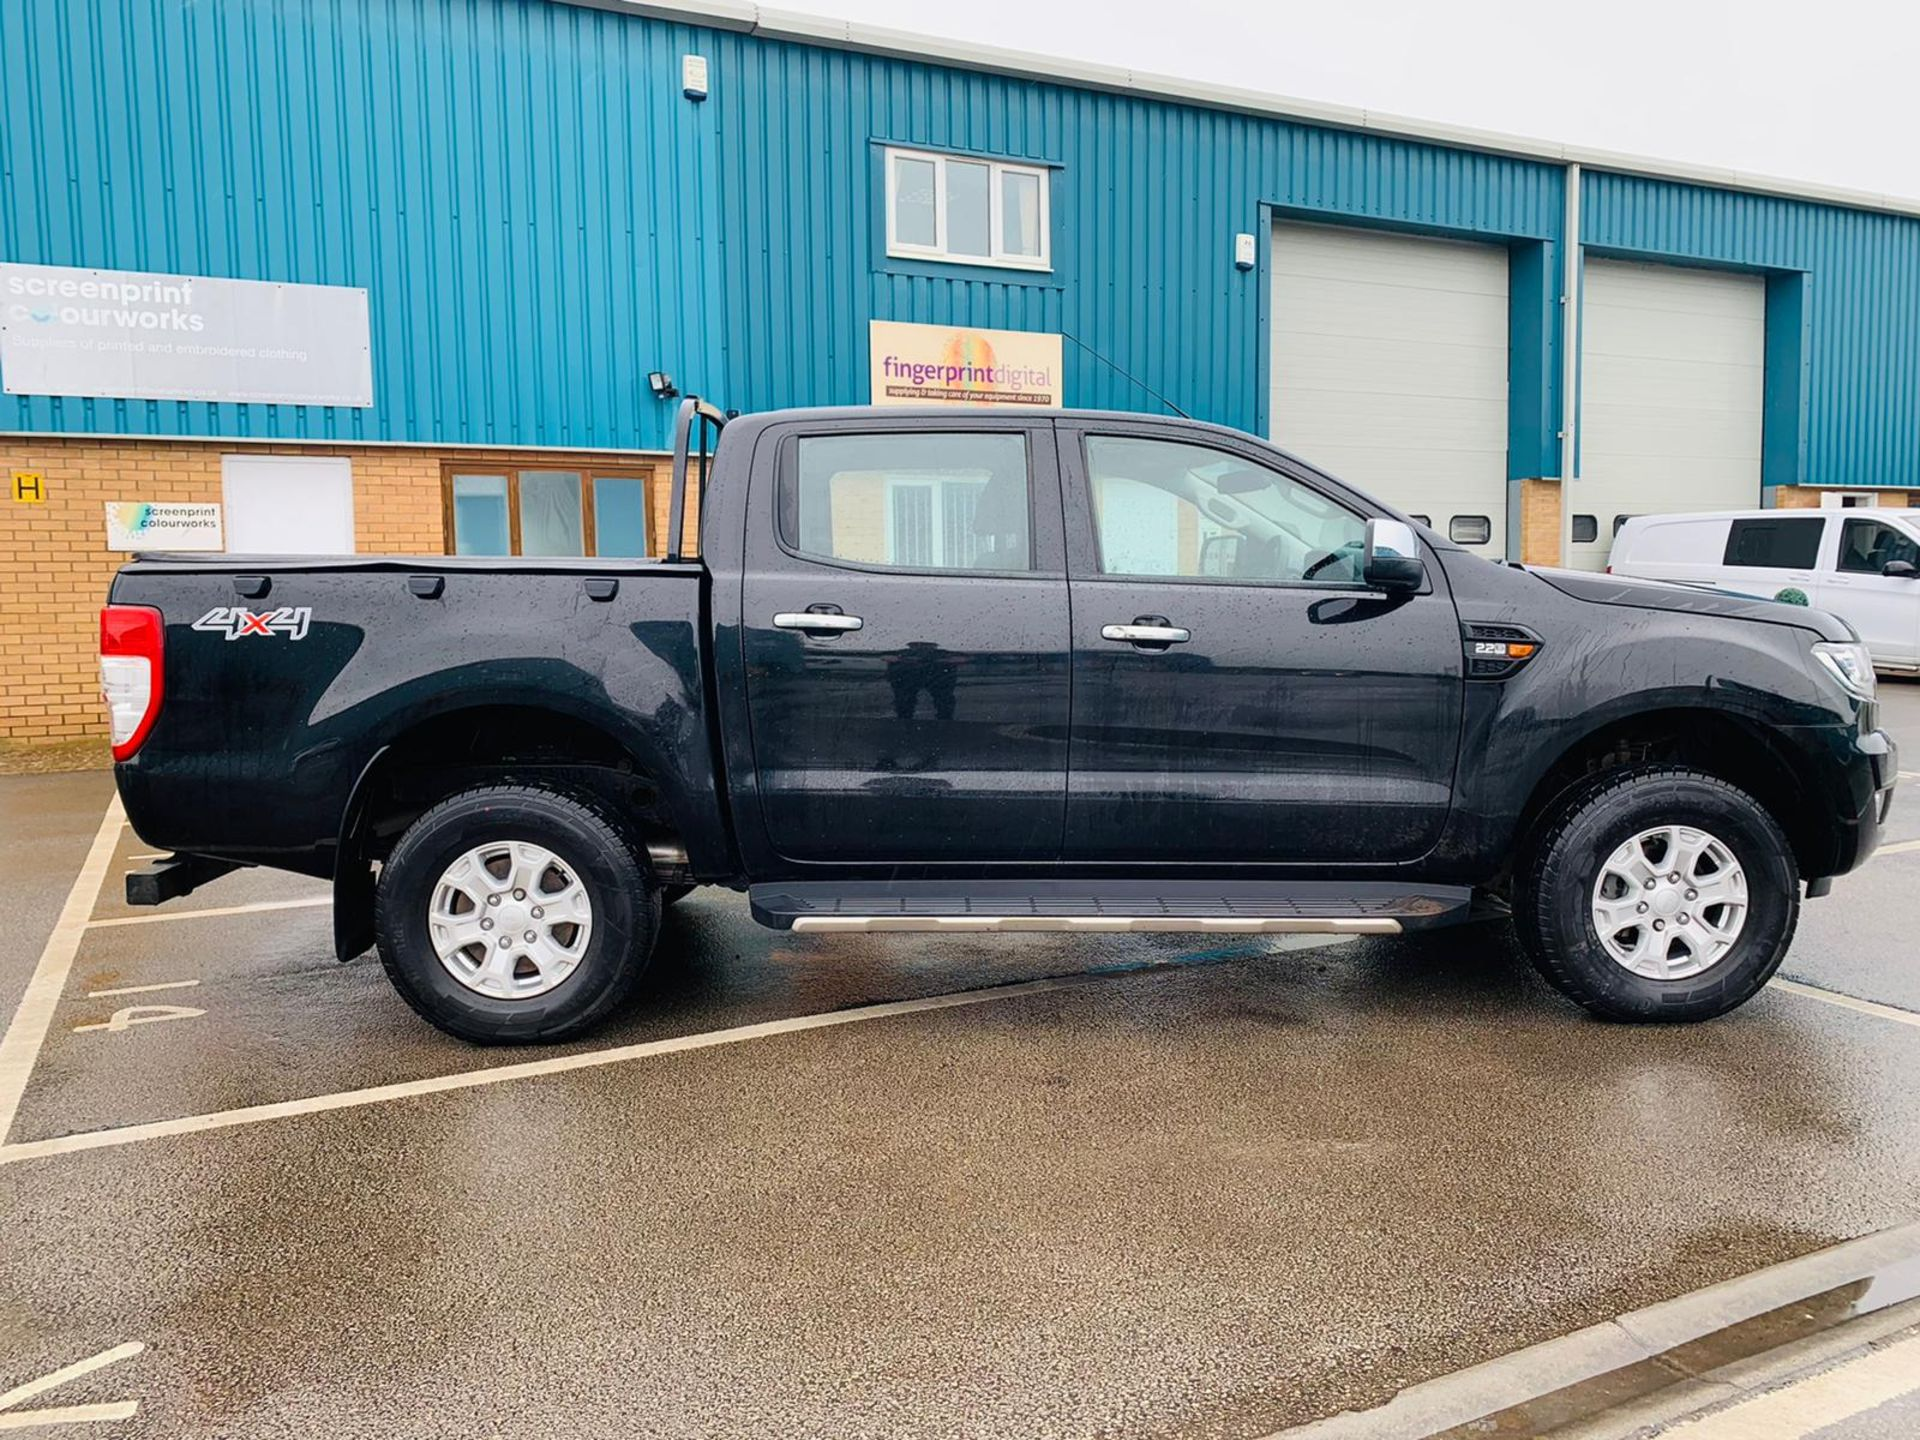 Ford Ranger 2.2 TDCI XLT 4x4 Double Cab - 2017 Model - Euro 6 - ULEZ Compliant - Service History - Image 2 of 24